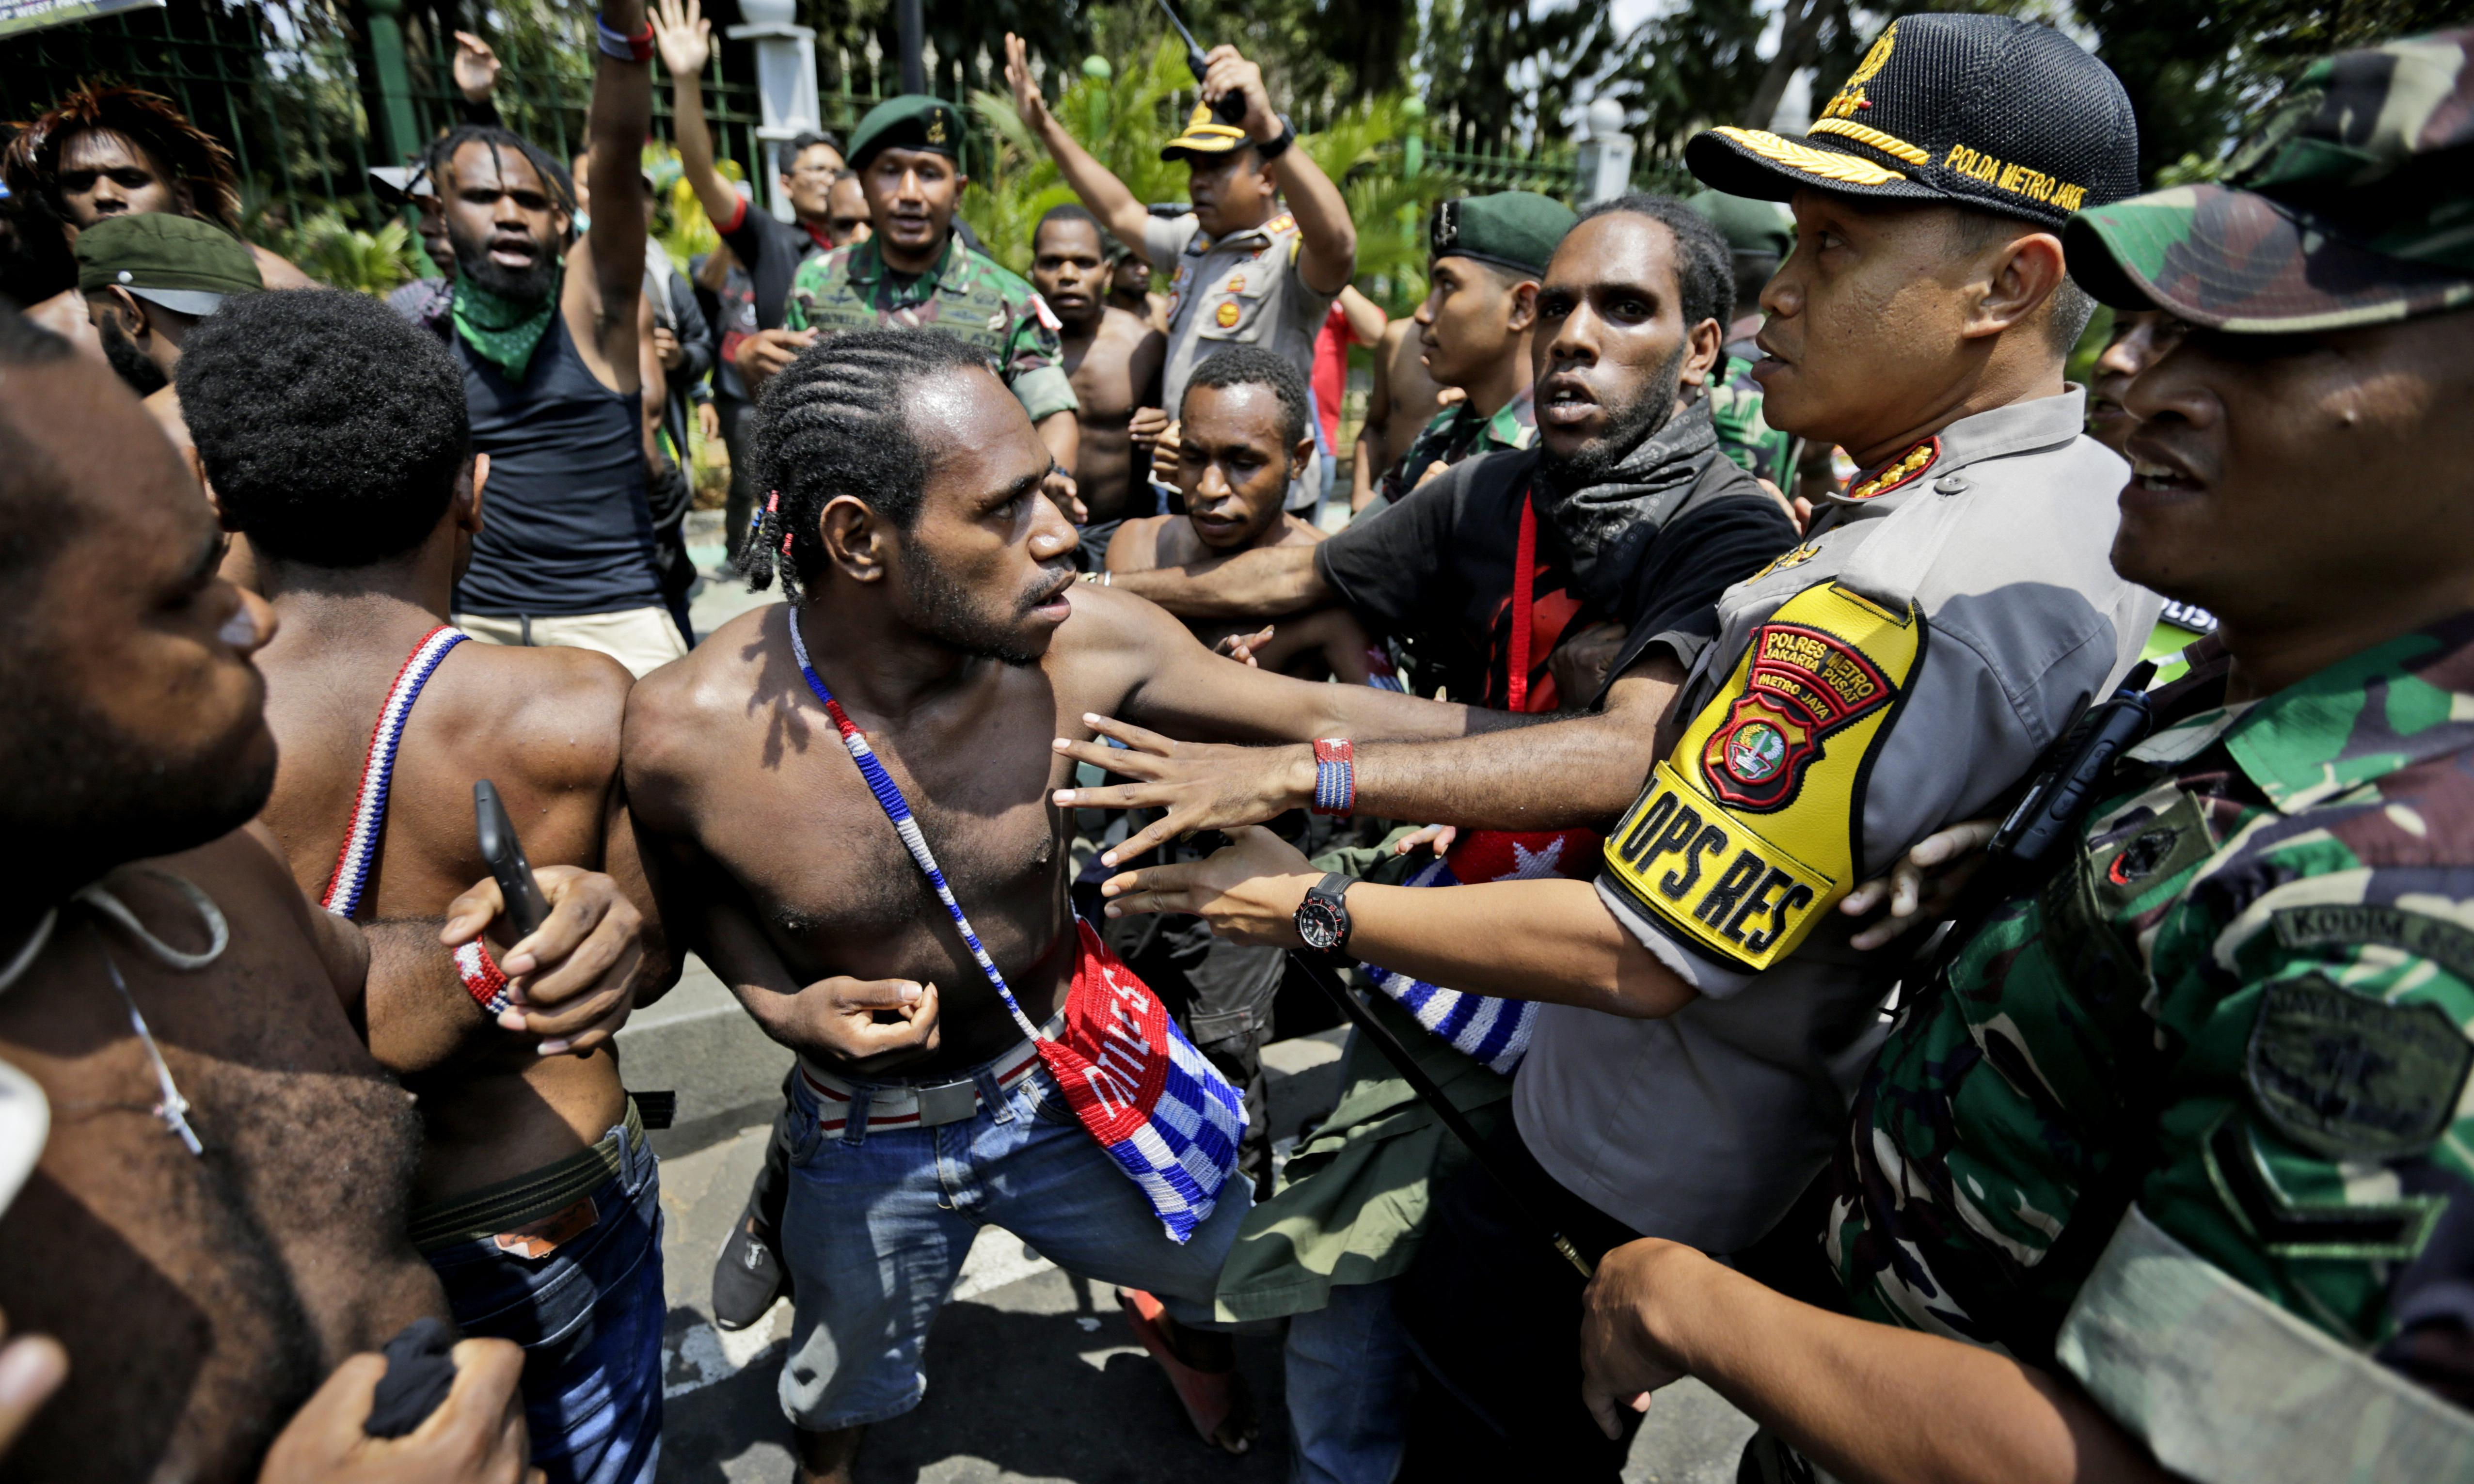 West Papua: Indonesia claims province has 'returned to normal' amid internet blackout